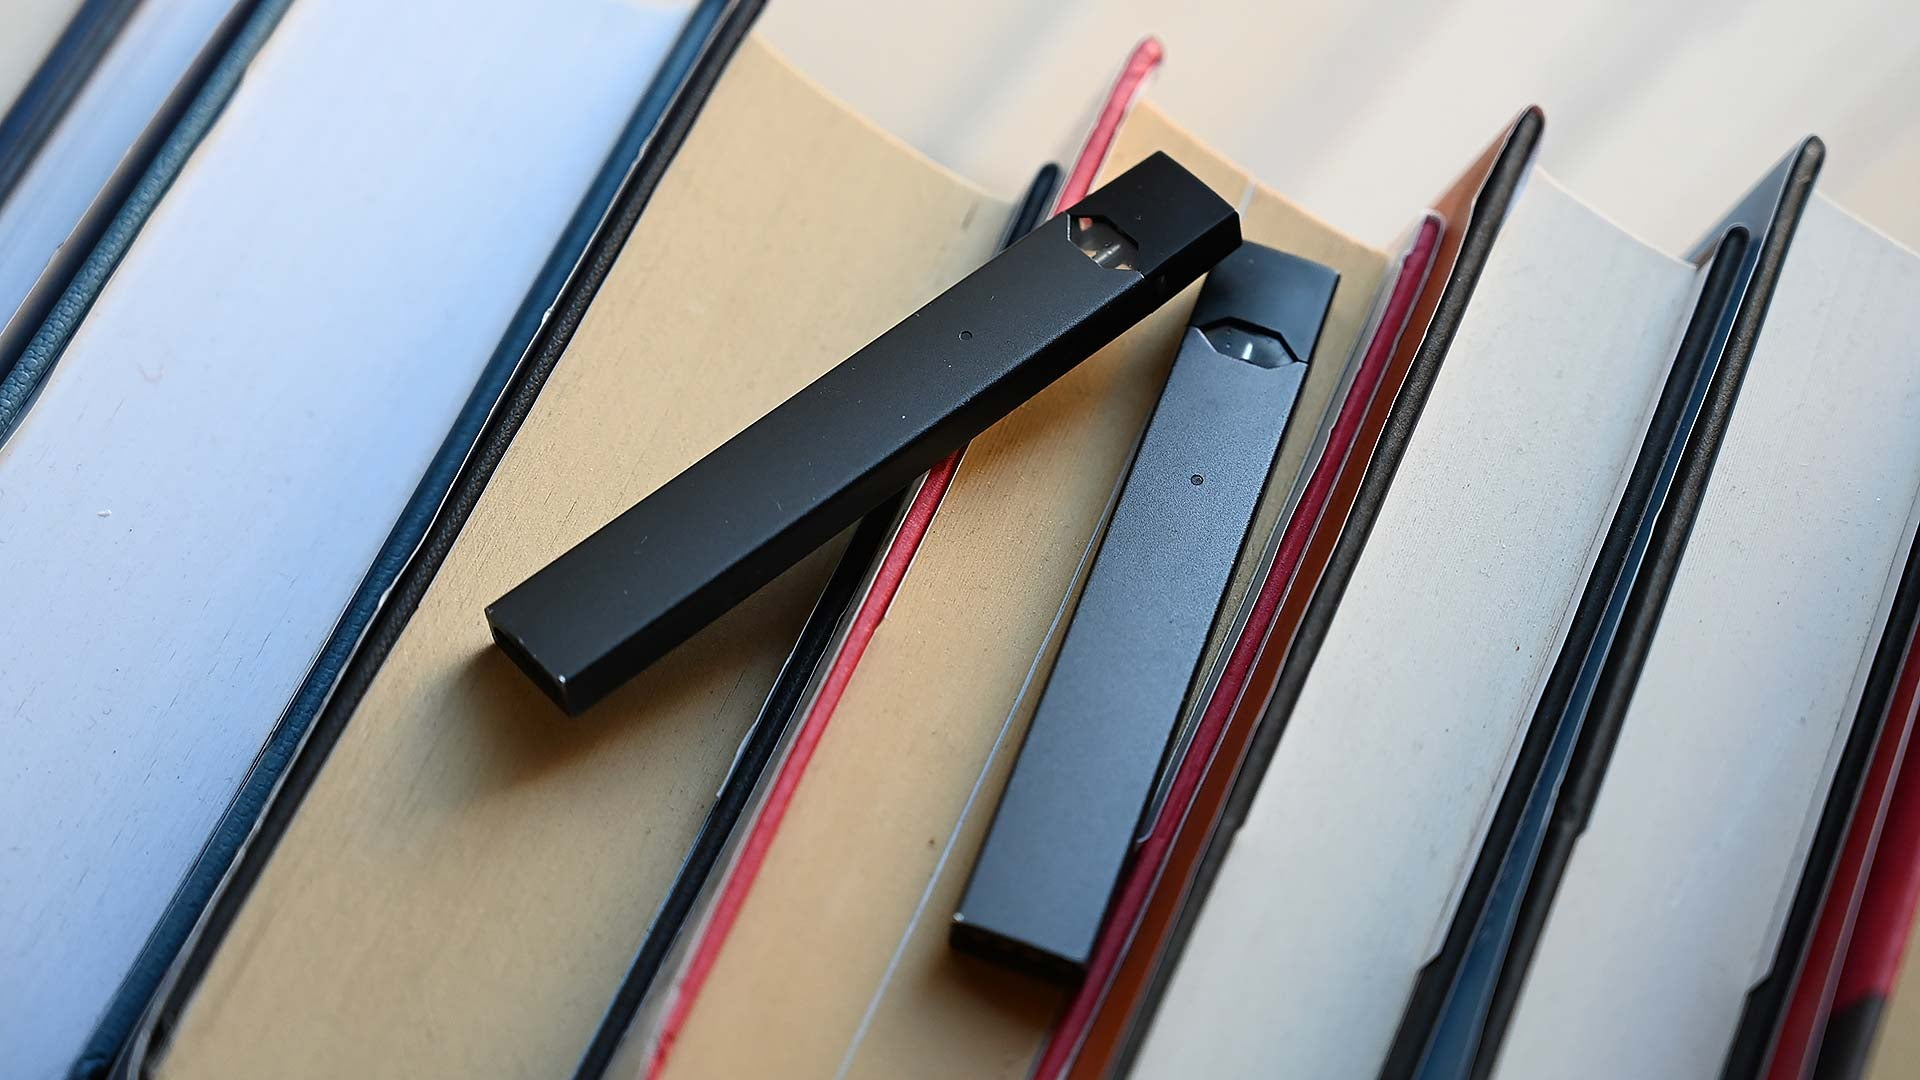 Juul Will Require ID Scans In Latest Attempt At Curbing Teen Vaping